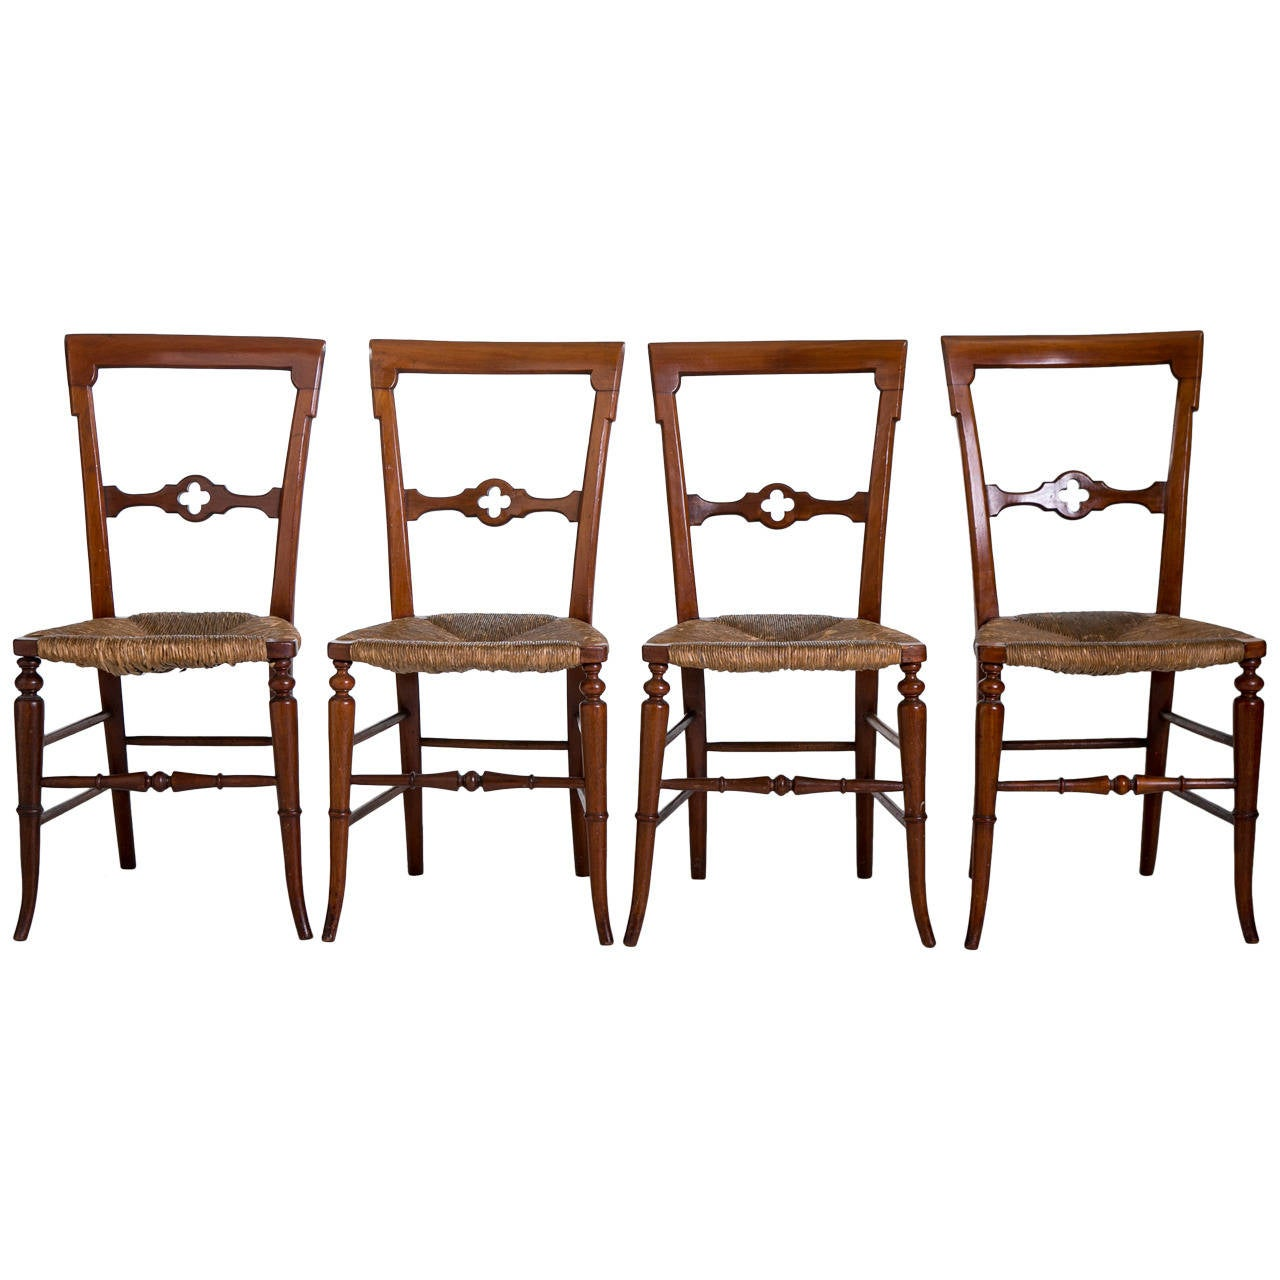 English Gothic Dining Chairs with Rush Seats, 1800s For Sale